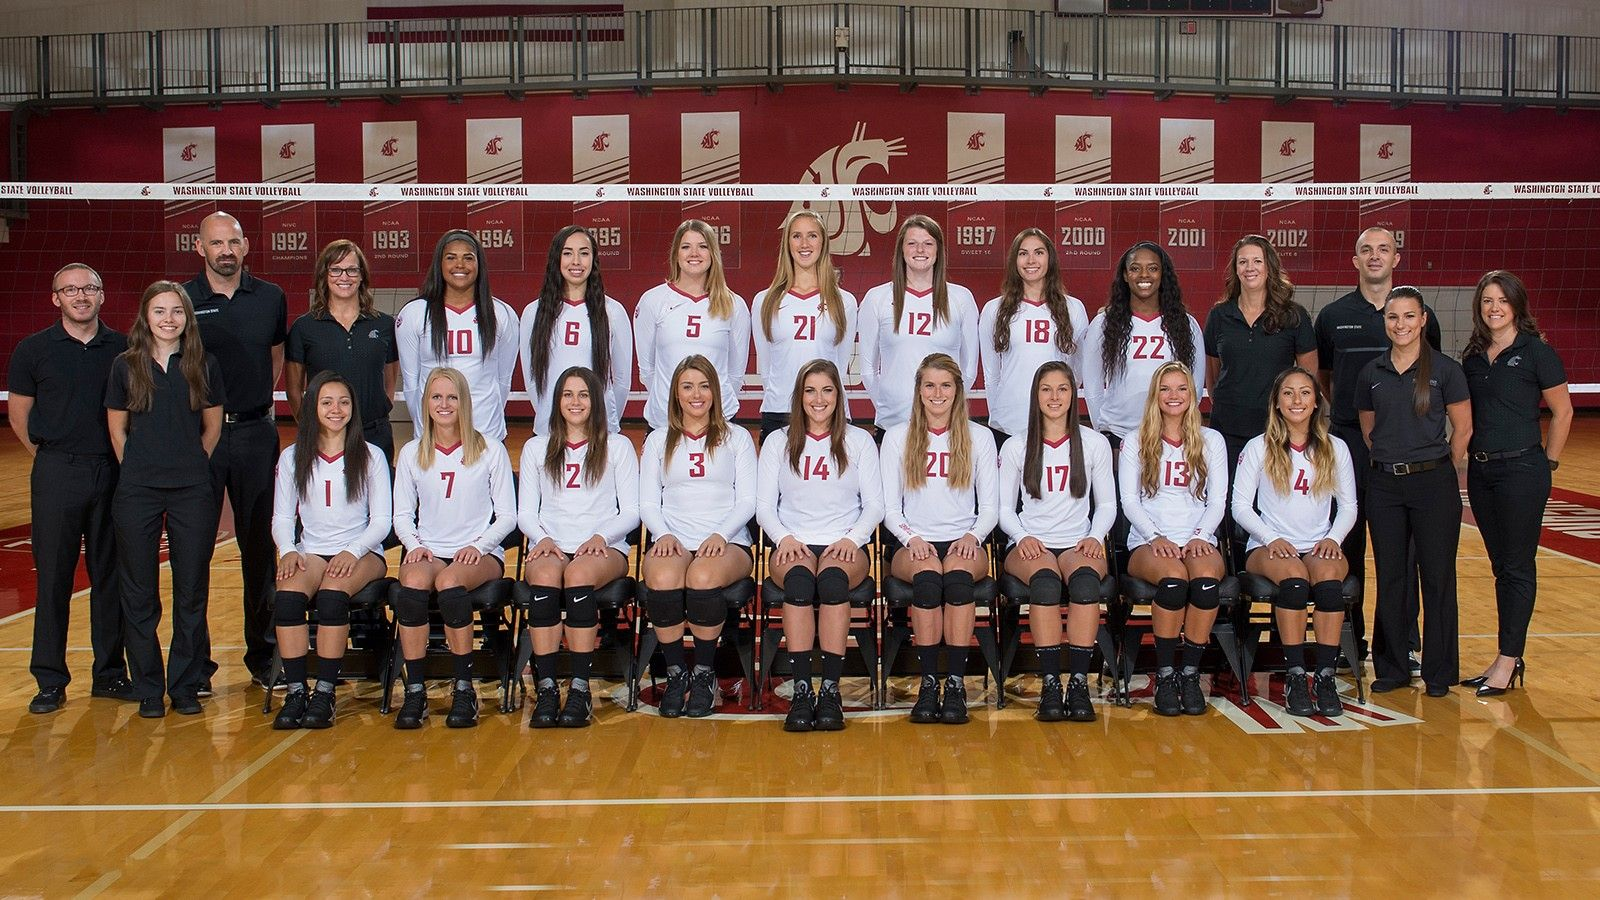 2016 Women S Volleyball Roster Wsucougars Com Washington State University Women Volleyball Volleyball News Volleyball